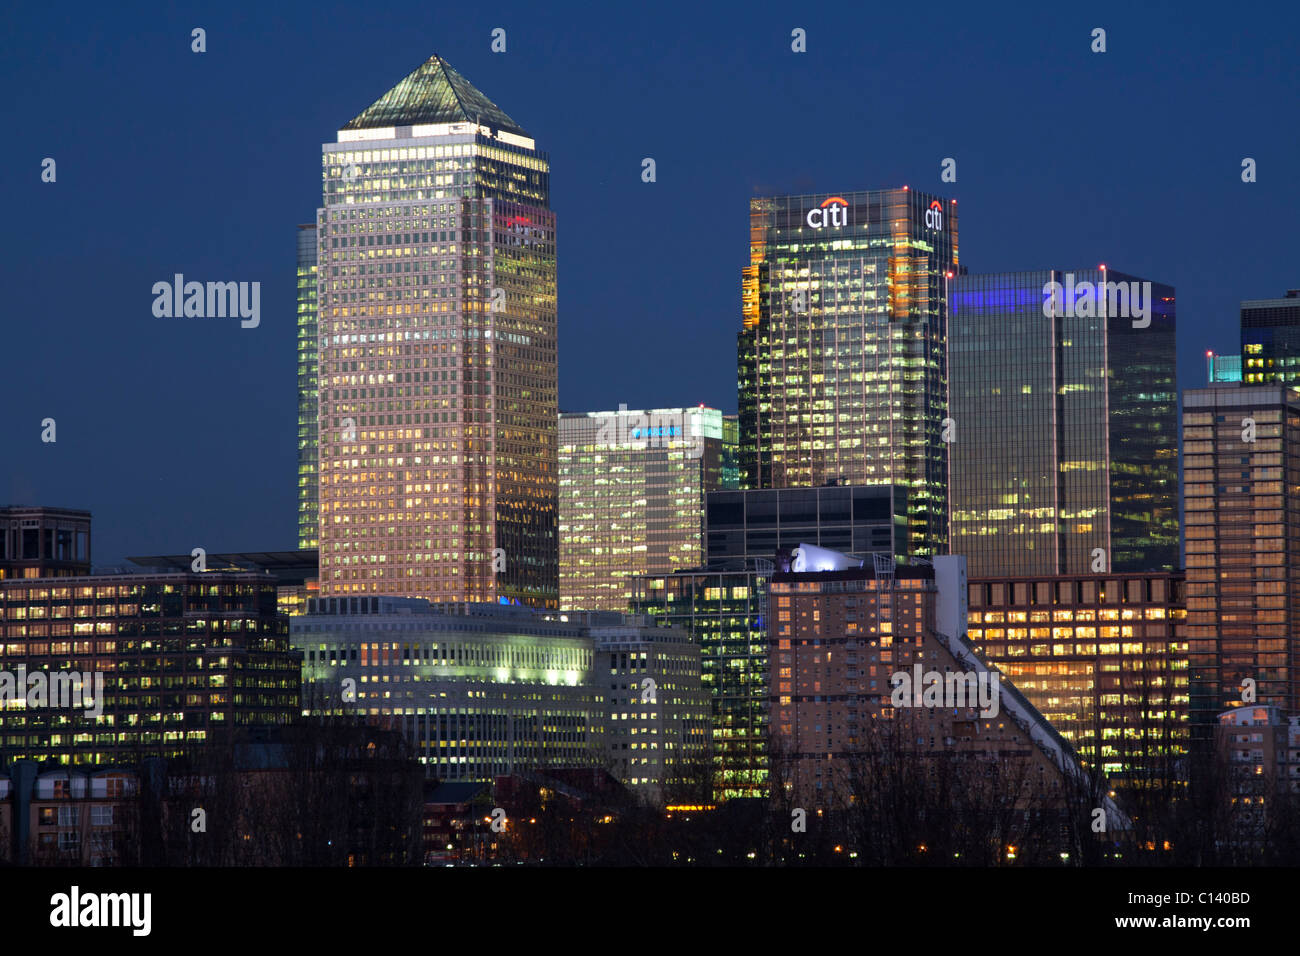 Canary Wharf - Docklands - London - Stock Image